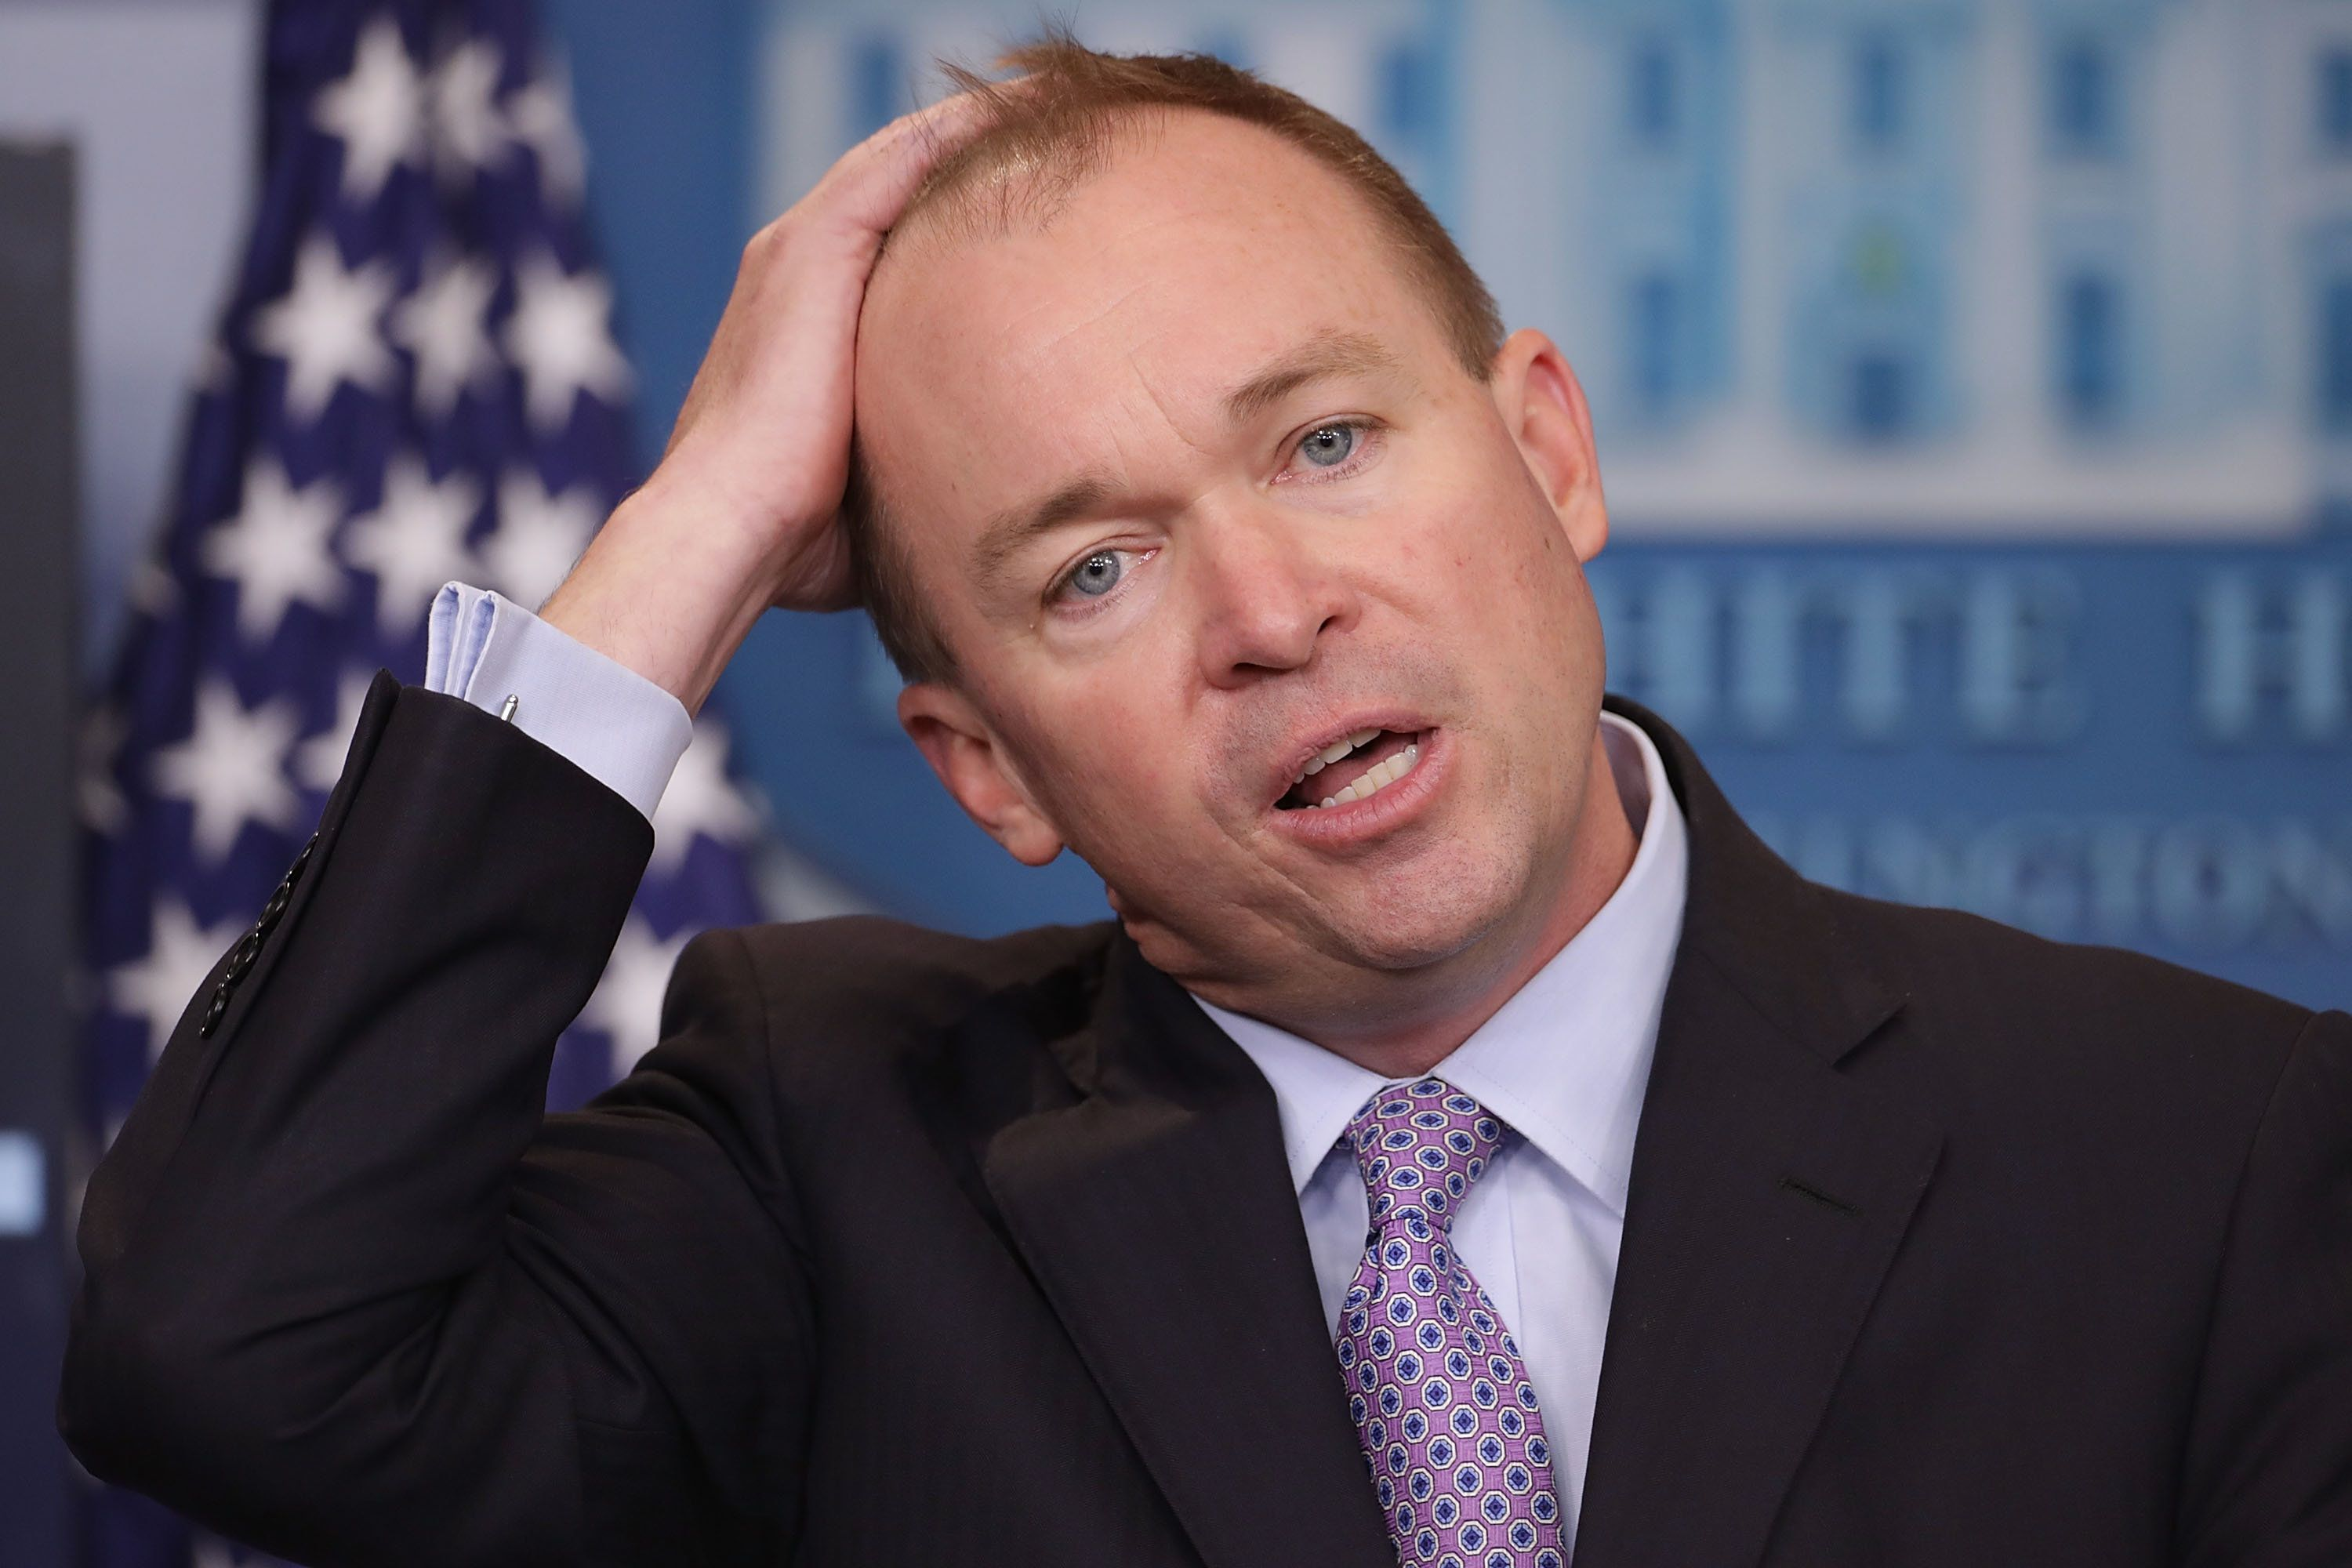 Mick Mulvaney Gets His Ass Kicked In His Private Trivia